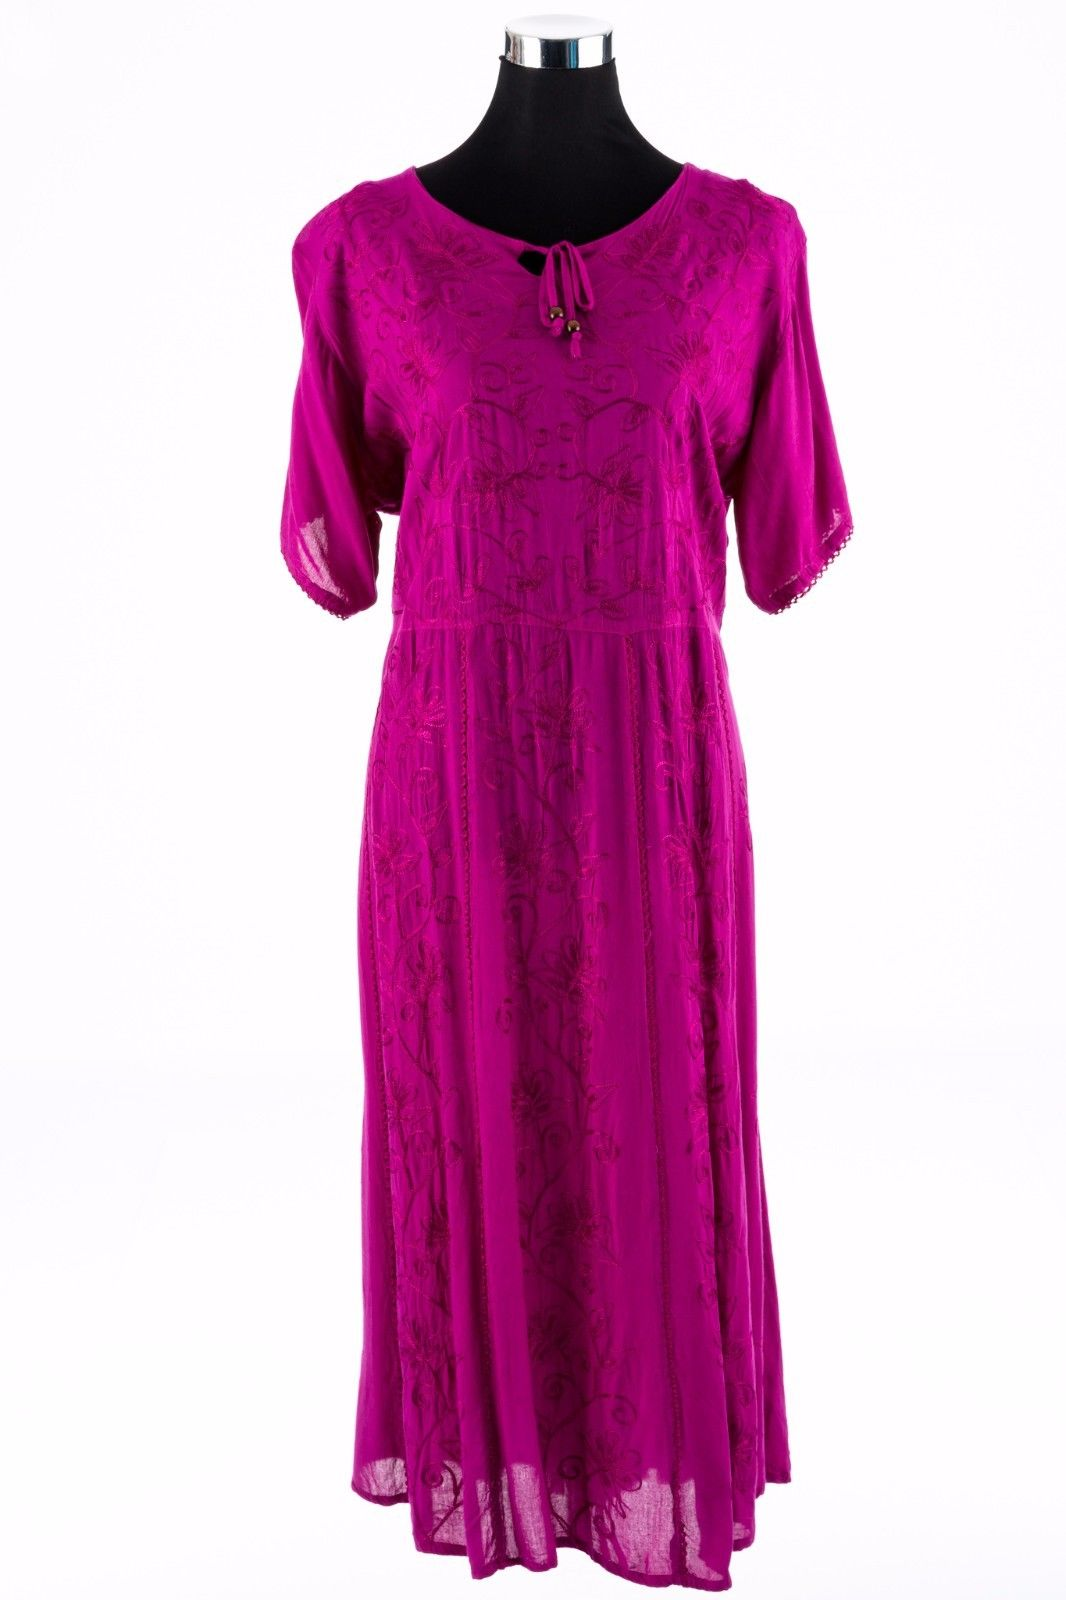 Beatrice-Long-Umbrella-Dress-Hot-Pink-Tie-Front-Boho-Style-Bohemian-Hippy-Dress-382139469220